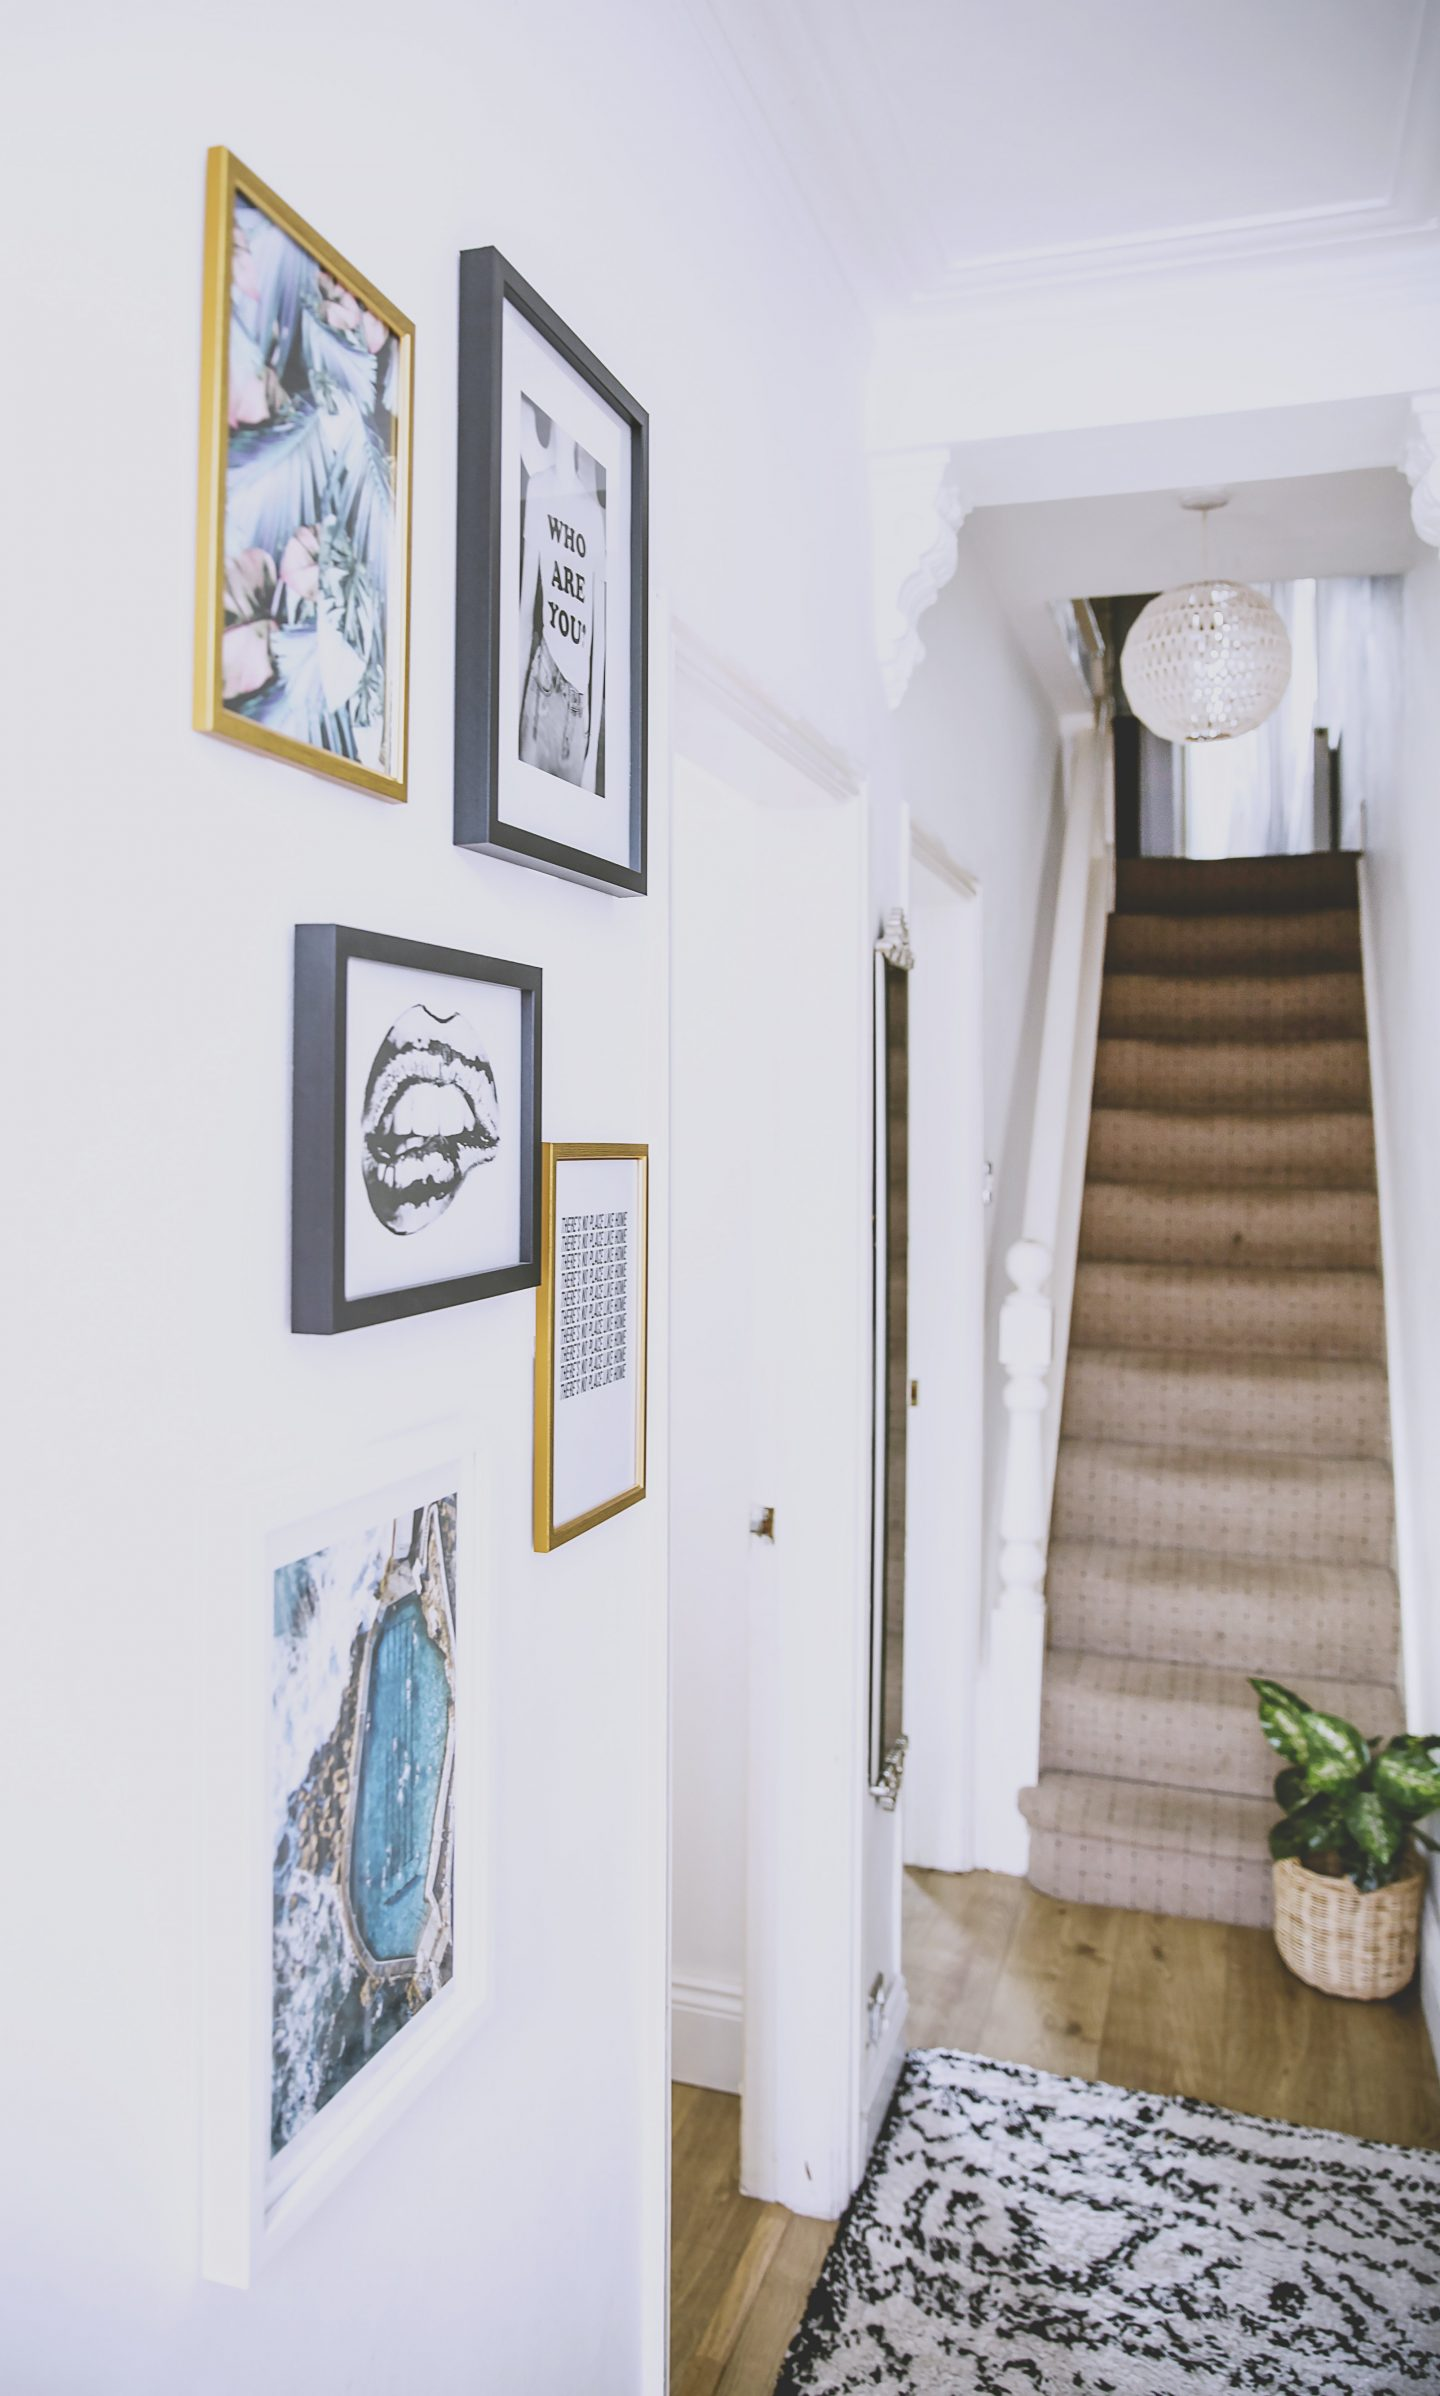 Interiors: A Budget Hallway Makeover (so that no-one notices the mess in the rest of the house)